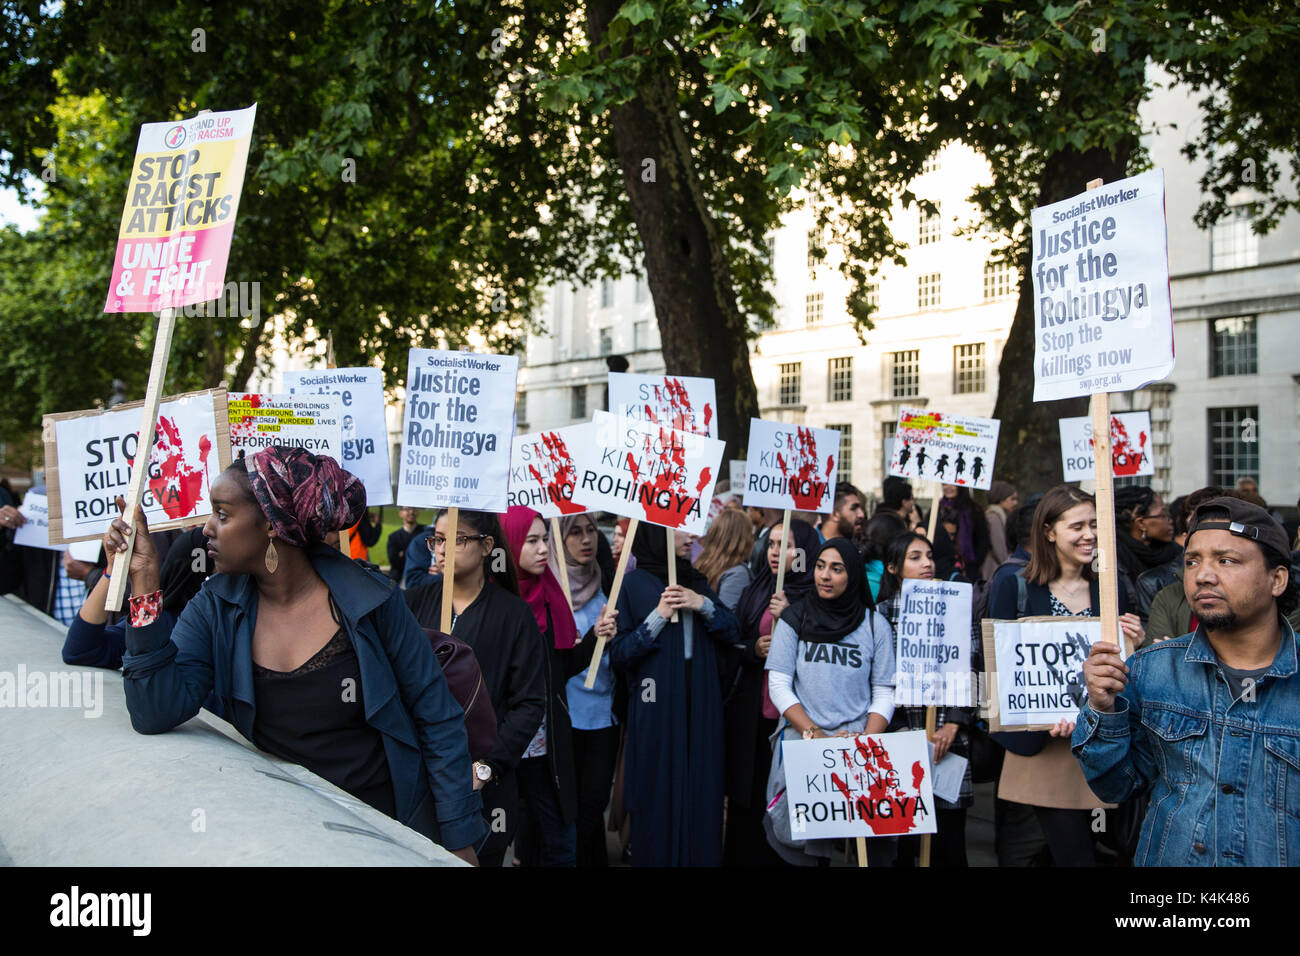 London, UK. 6th Sep, 2017. Protesters gather for an emergency rally opposite Downing Street intended to apply pressure on the British Government to intervene to prevent the killing of Rohingya people in Myanmar by the army and to urge Bangladesh and India to assist Rohingya refugees from Myanmar. Credit: Mark Kerrison/Alamy Live News - Stock Image